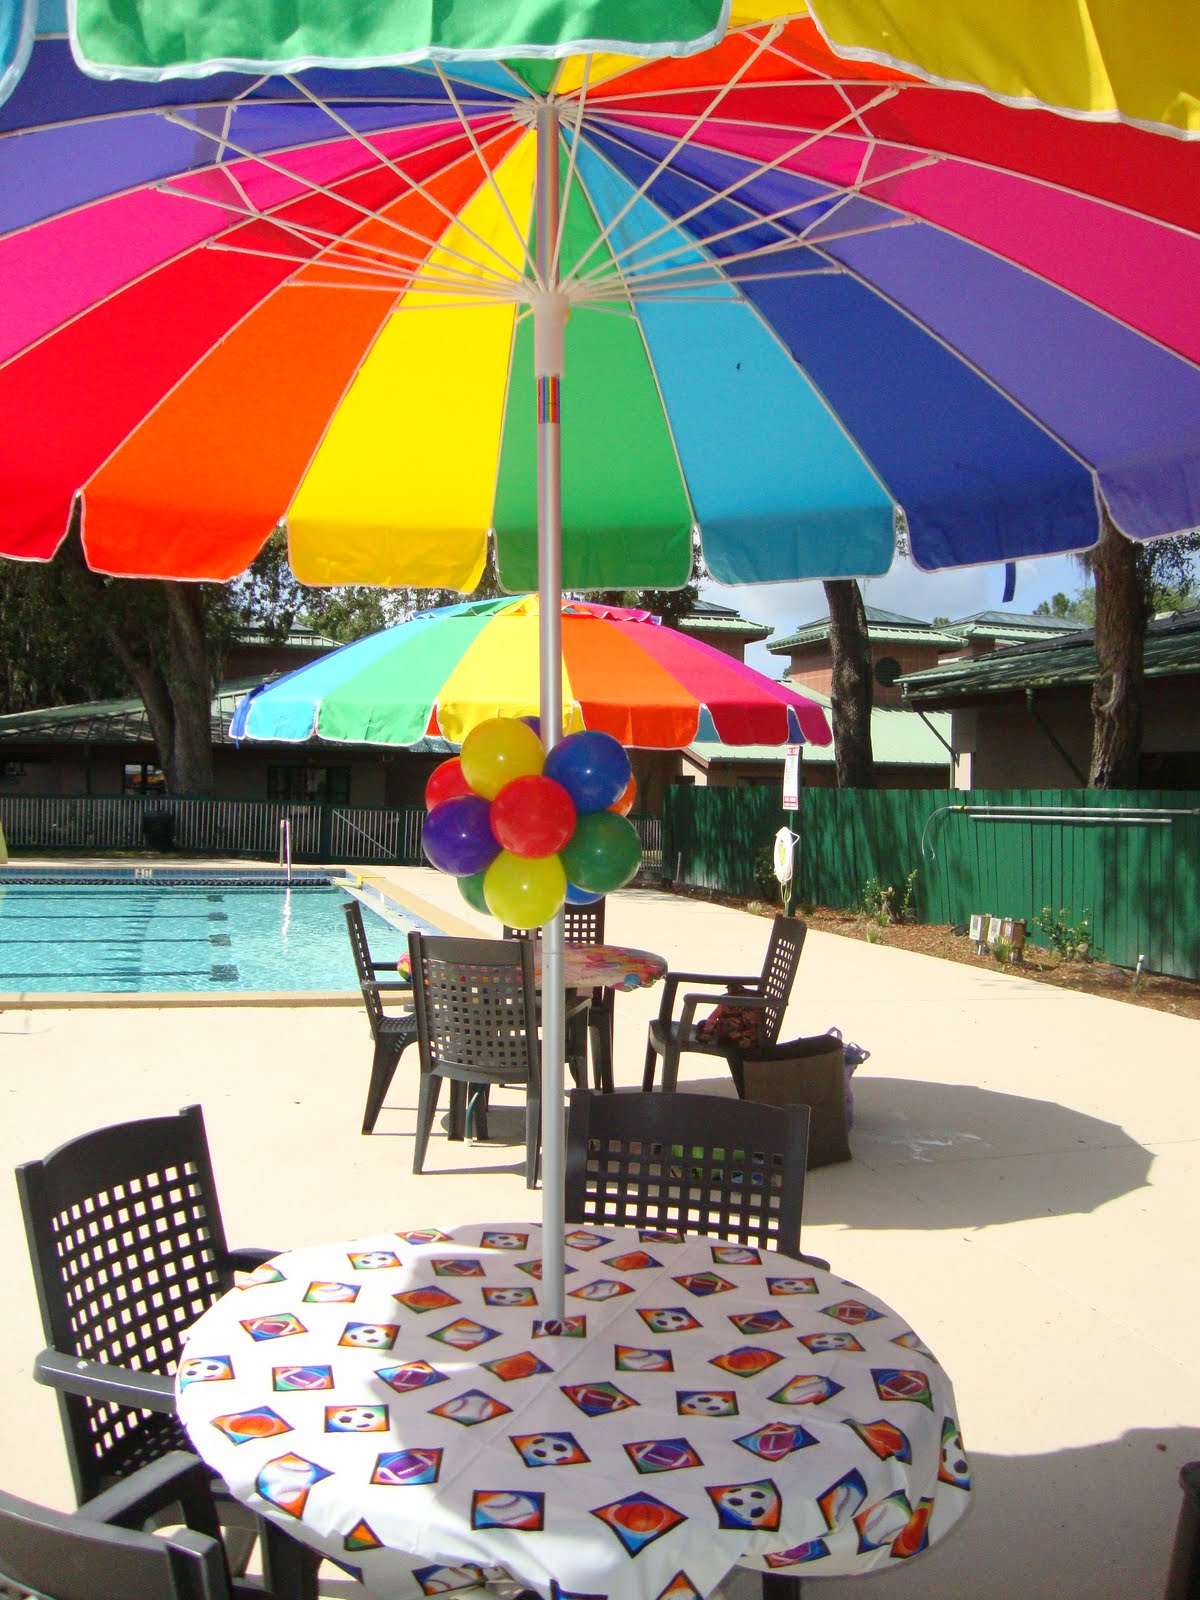 Party people event decorating company pool party soccer for Pool decorations